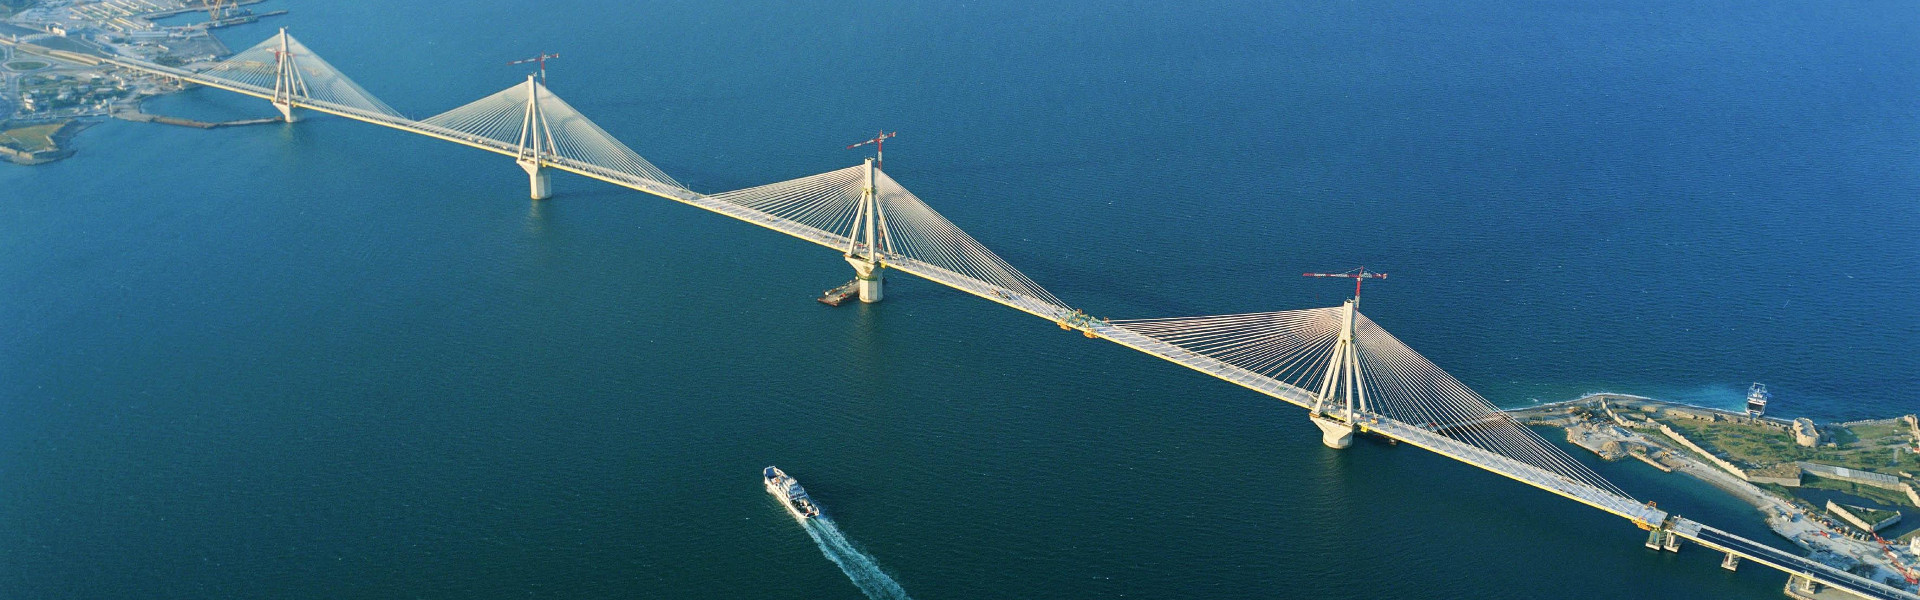 Rion Antirion Bridge 2 1920x600